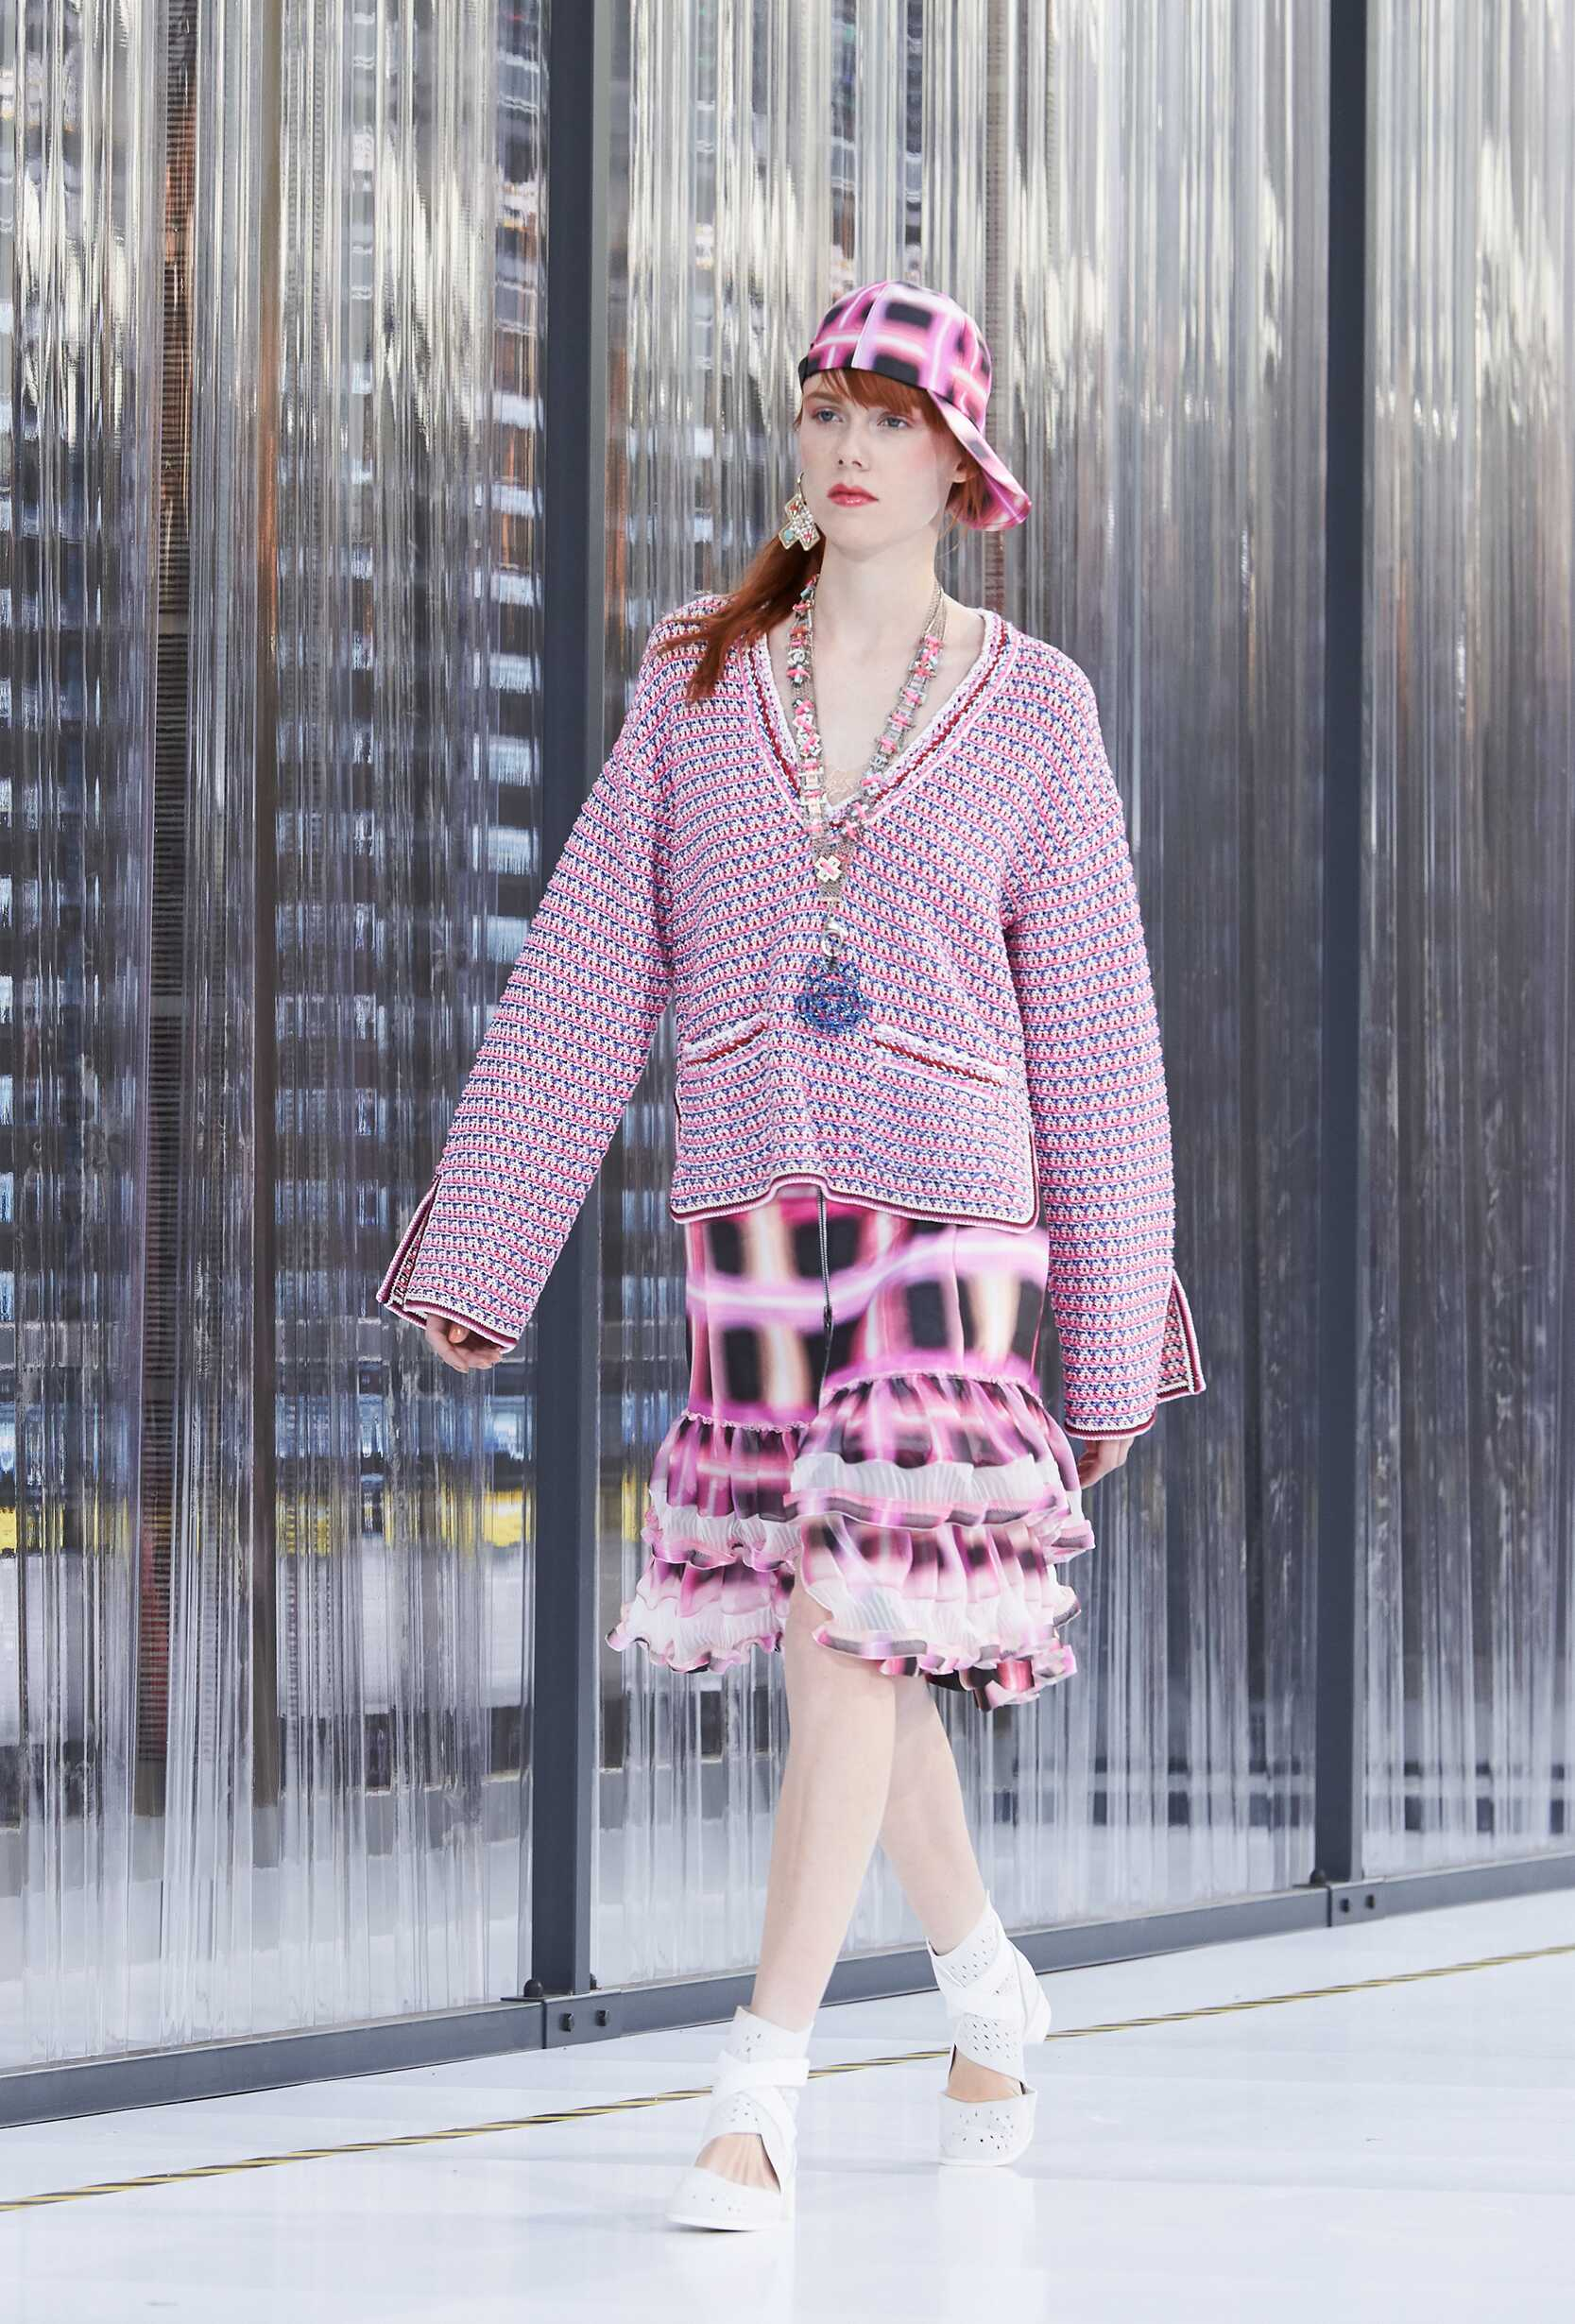 SS 2017 Chanel Fashion Show Paris Fashion Week